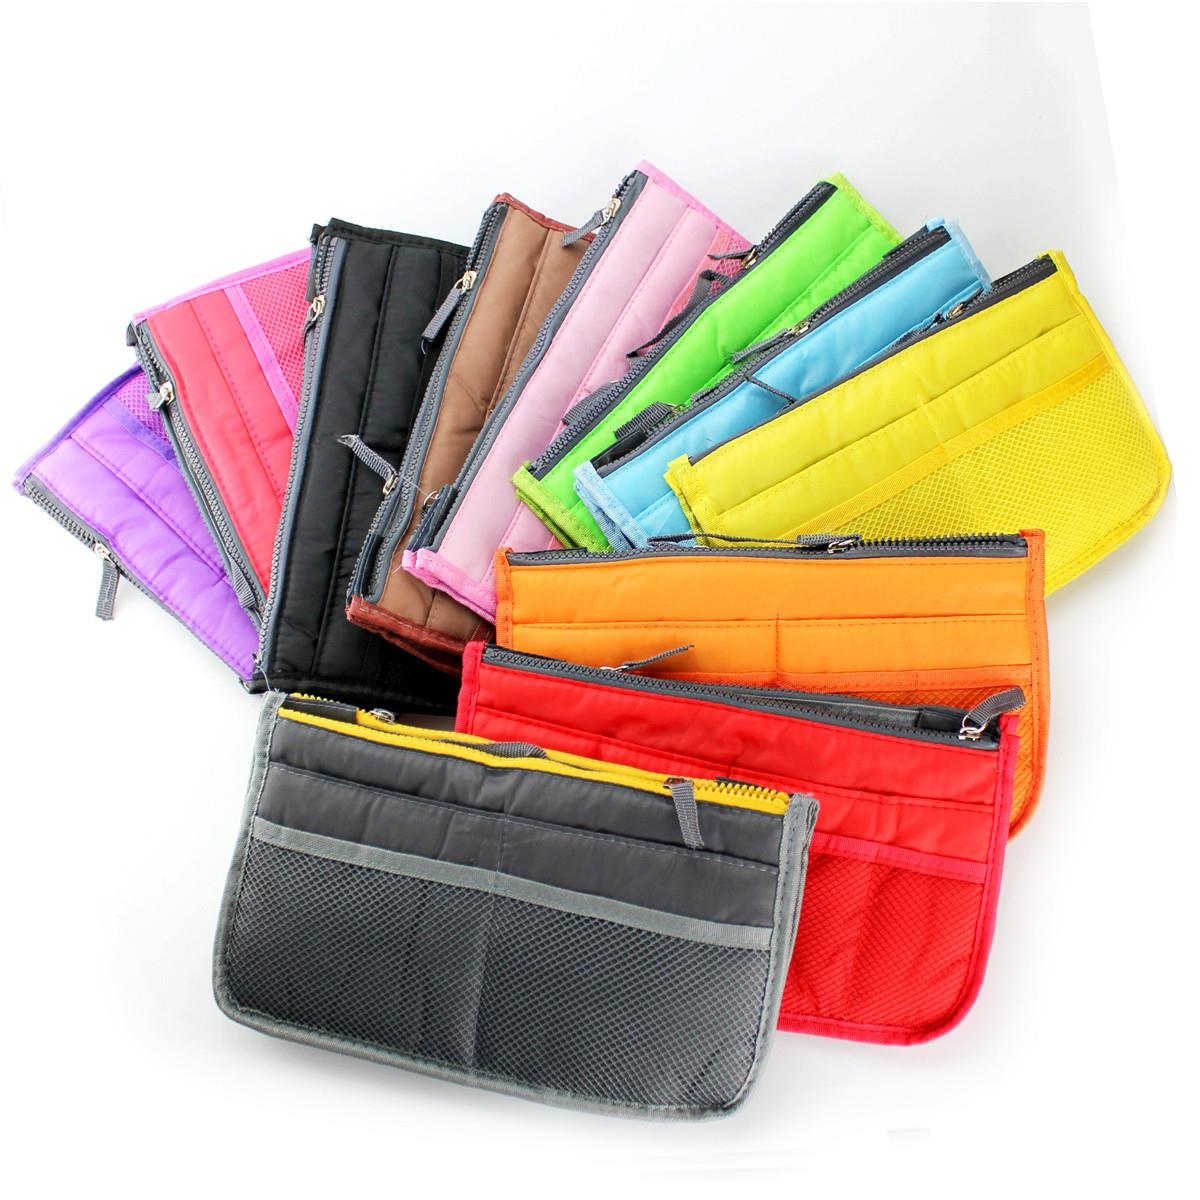 Candy Color New 2015 Lady's Makeup Handbags Cosmetic Bags Travel Bag Pockets Organizer Storage Clutch Bags Cases Lady Purse(China (Mainland))